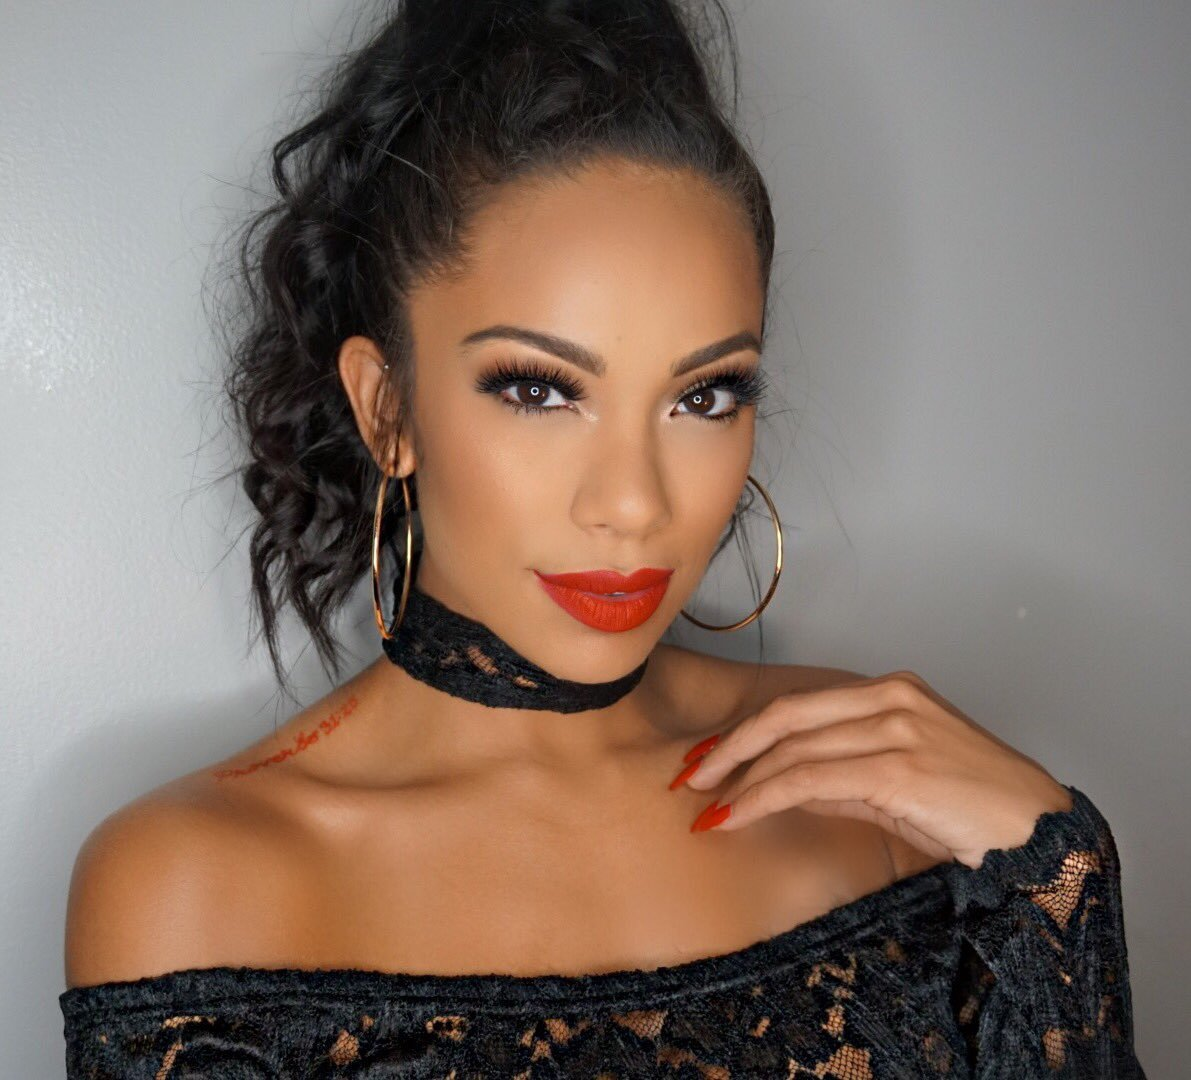 Erica Mena Gets Ready For A Fire 2021 – Check Out The New Photos She Just Dropped